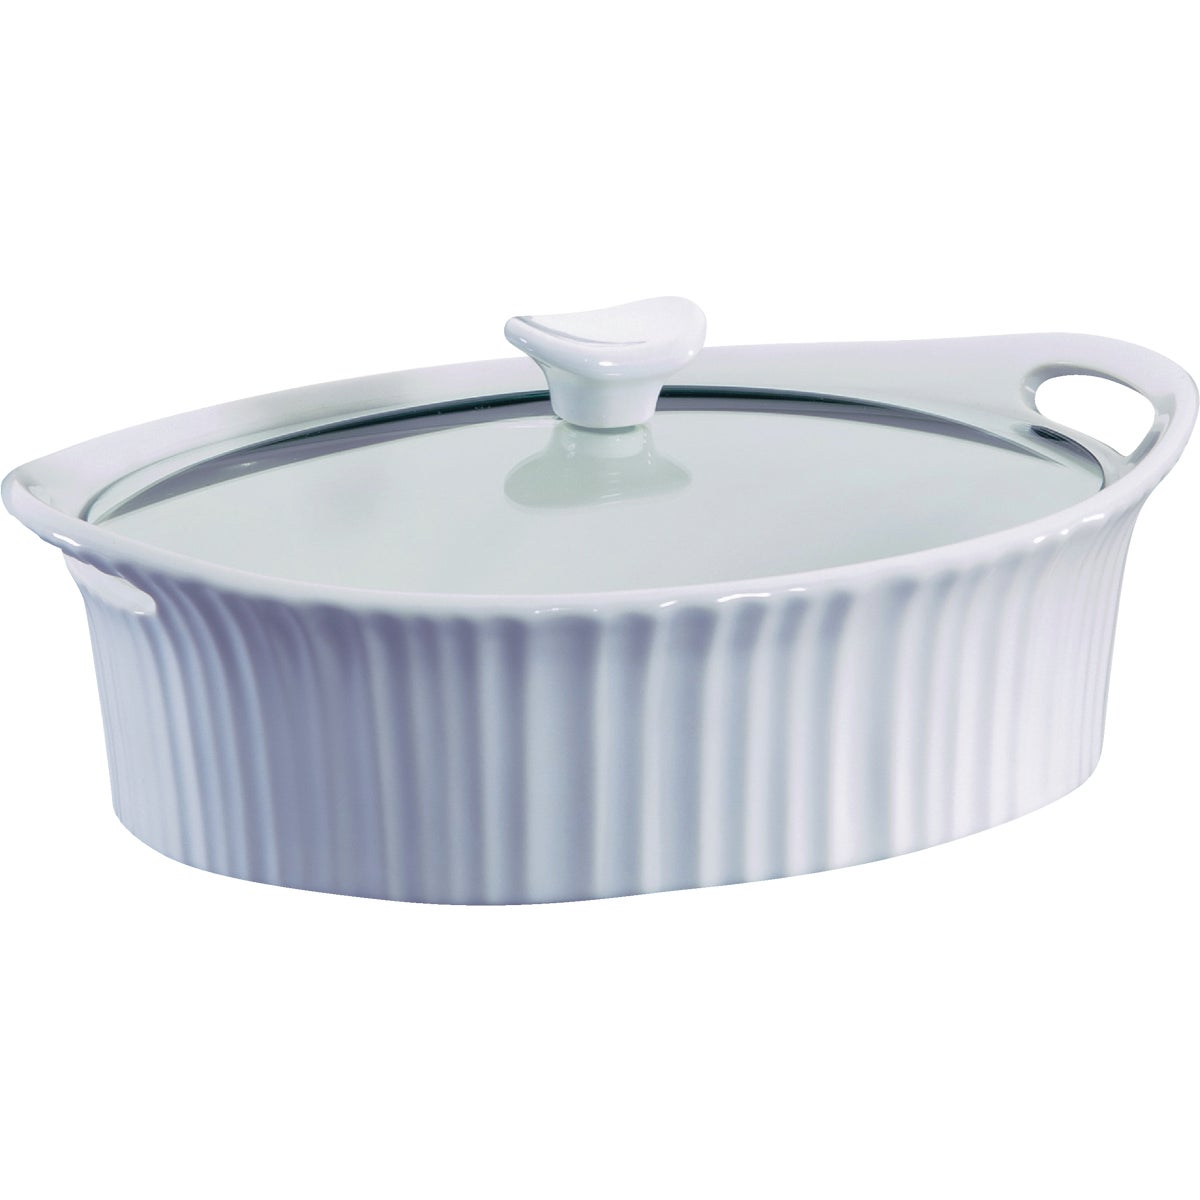 OVAL COVERED CASSEROLE - 1105935 by World Kitchen  Ekco